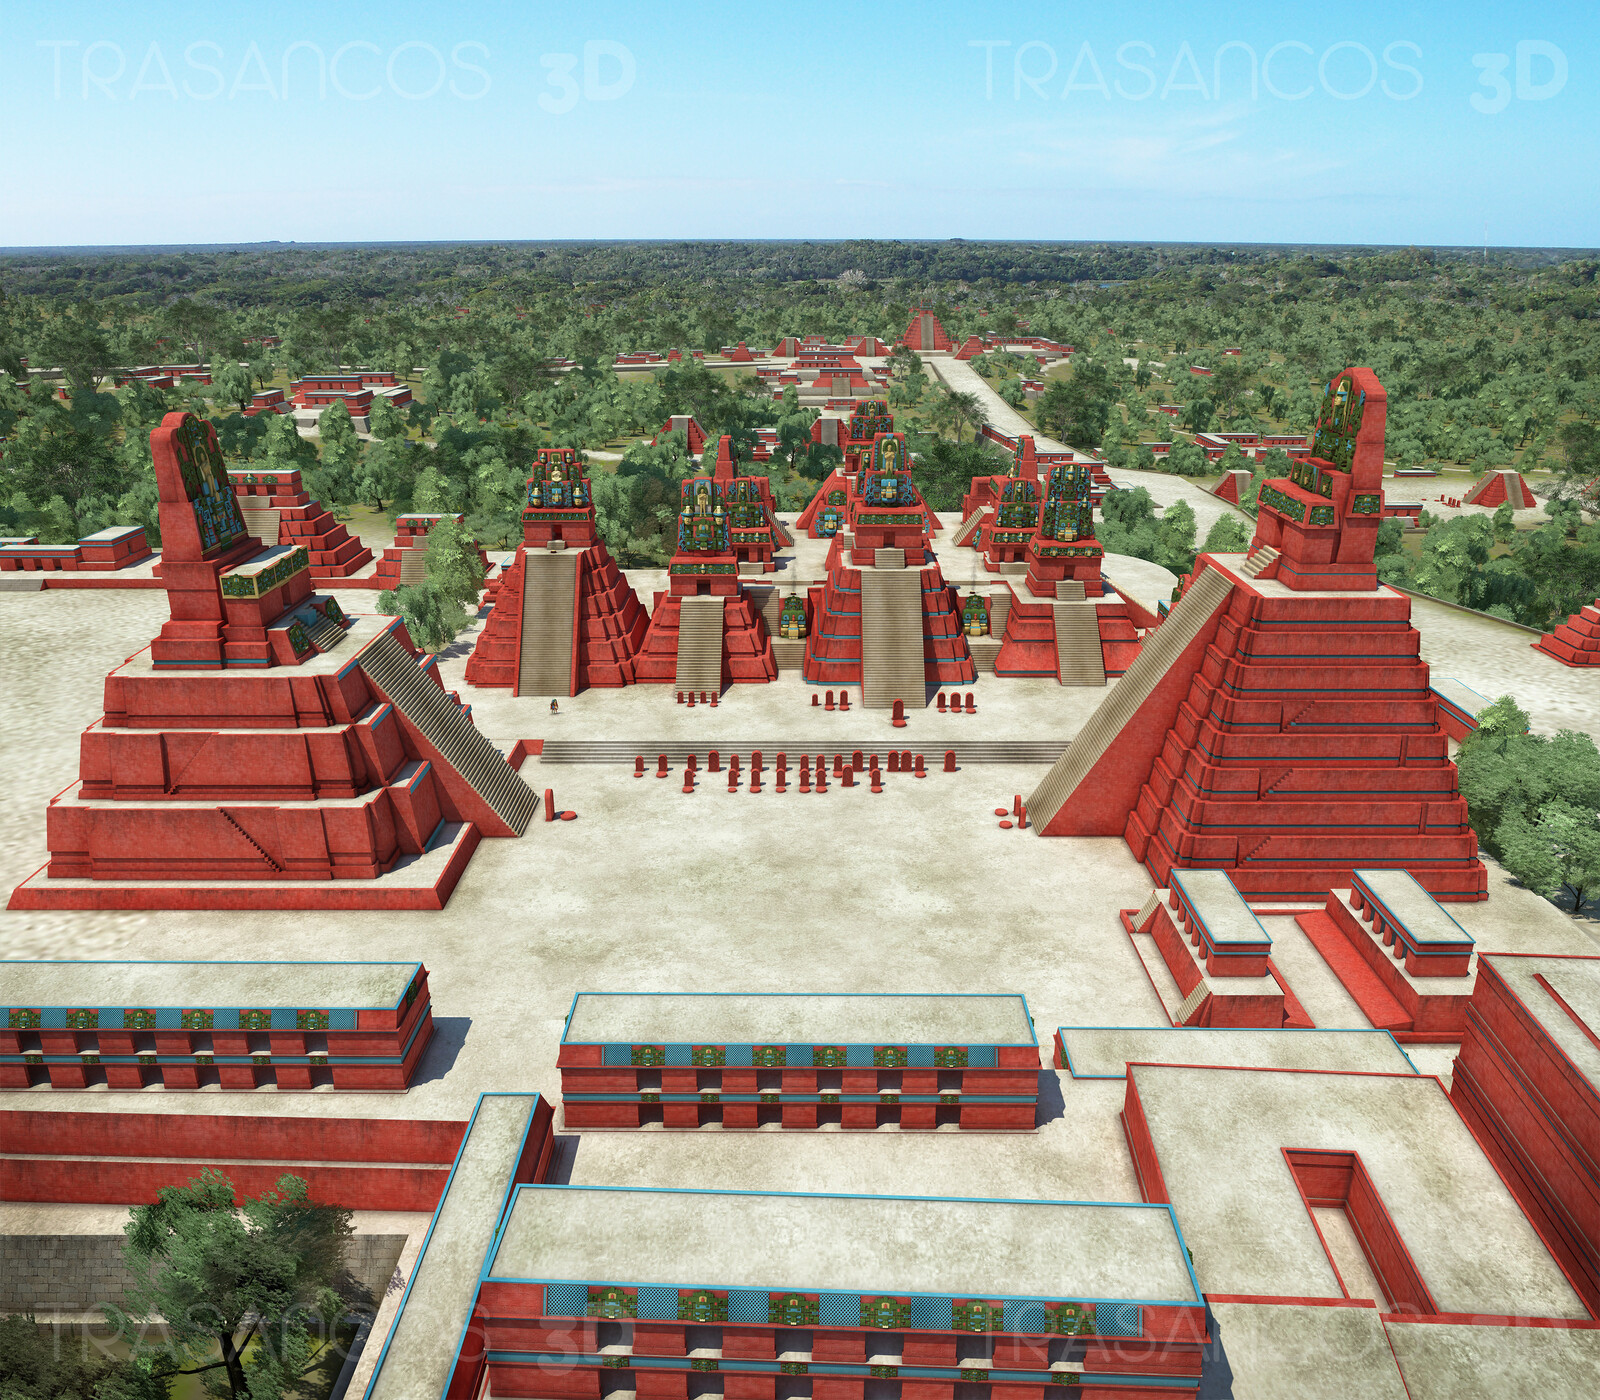 View of the Great Square of Tikal over the Central Acropolis and the Temple I and II at both sides and the North Acrópolis at the background. Modeled in collaboration with: - Andrés Armesto - Alejandro Soriano - Carlos Paz